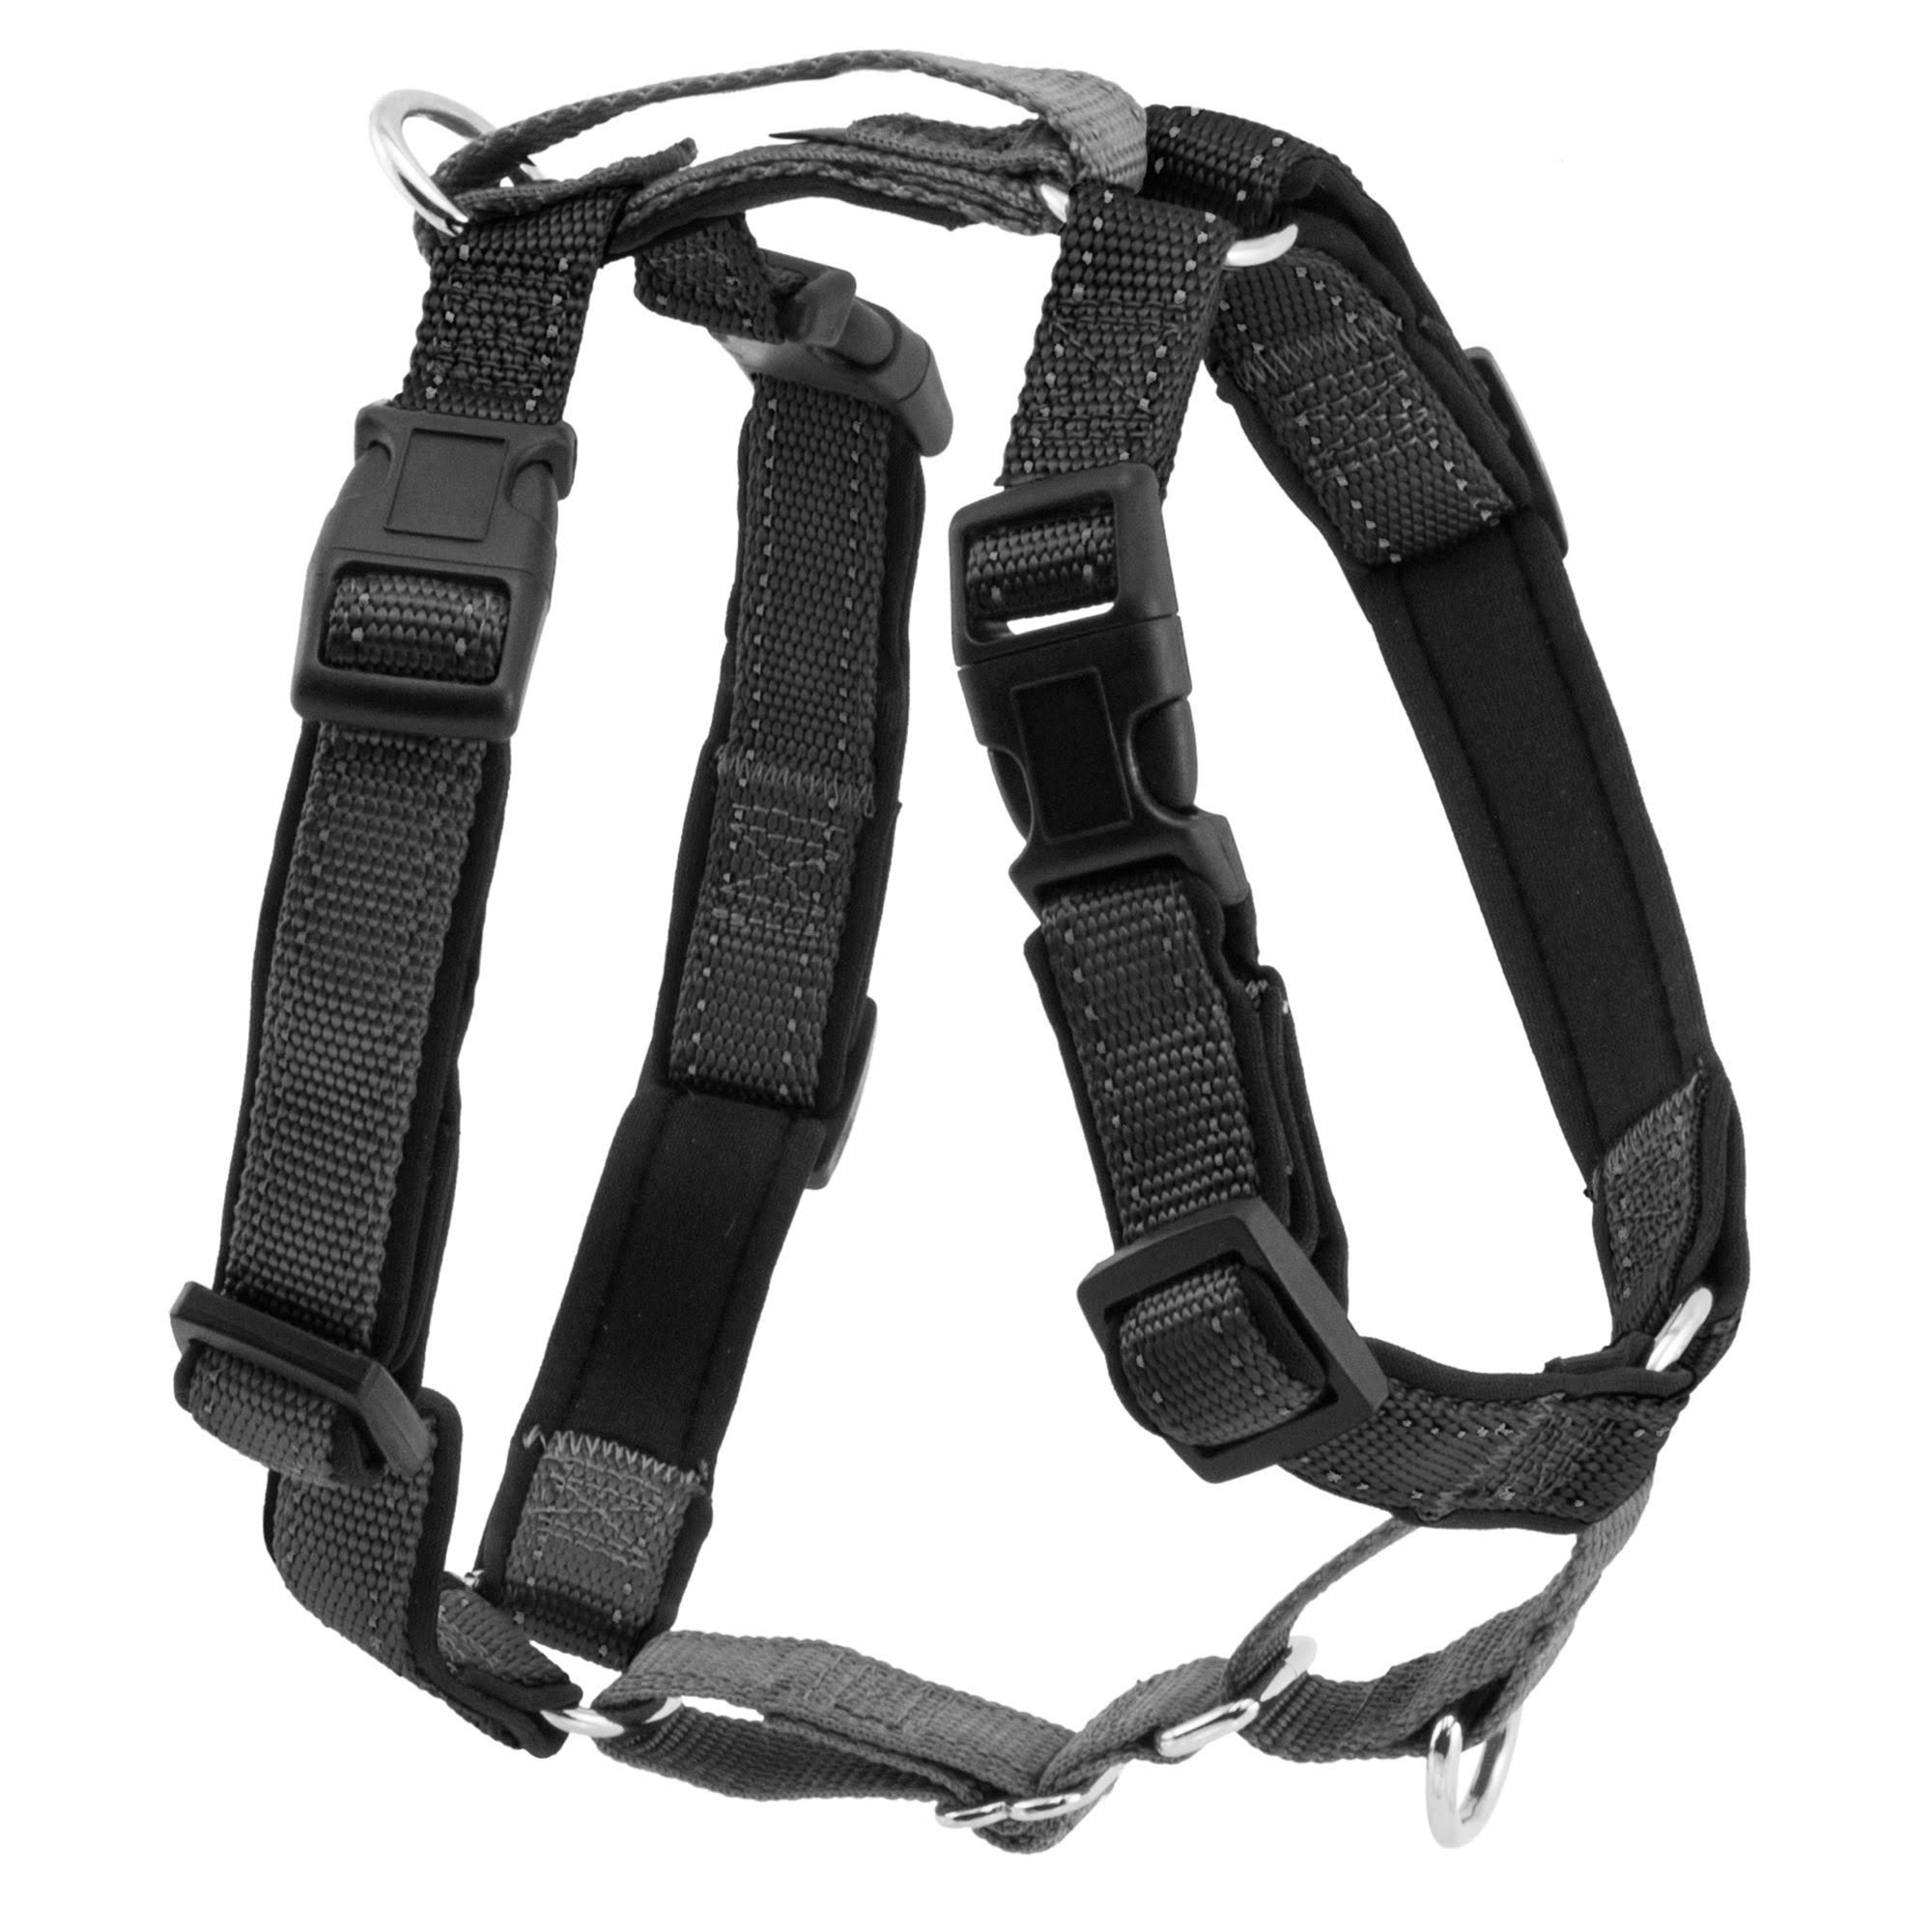 Petsafe 3 in 1 Dog Harness - Black, Small